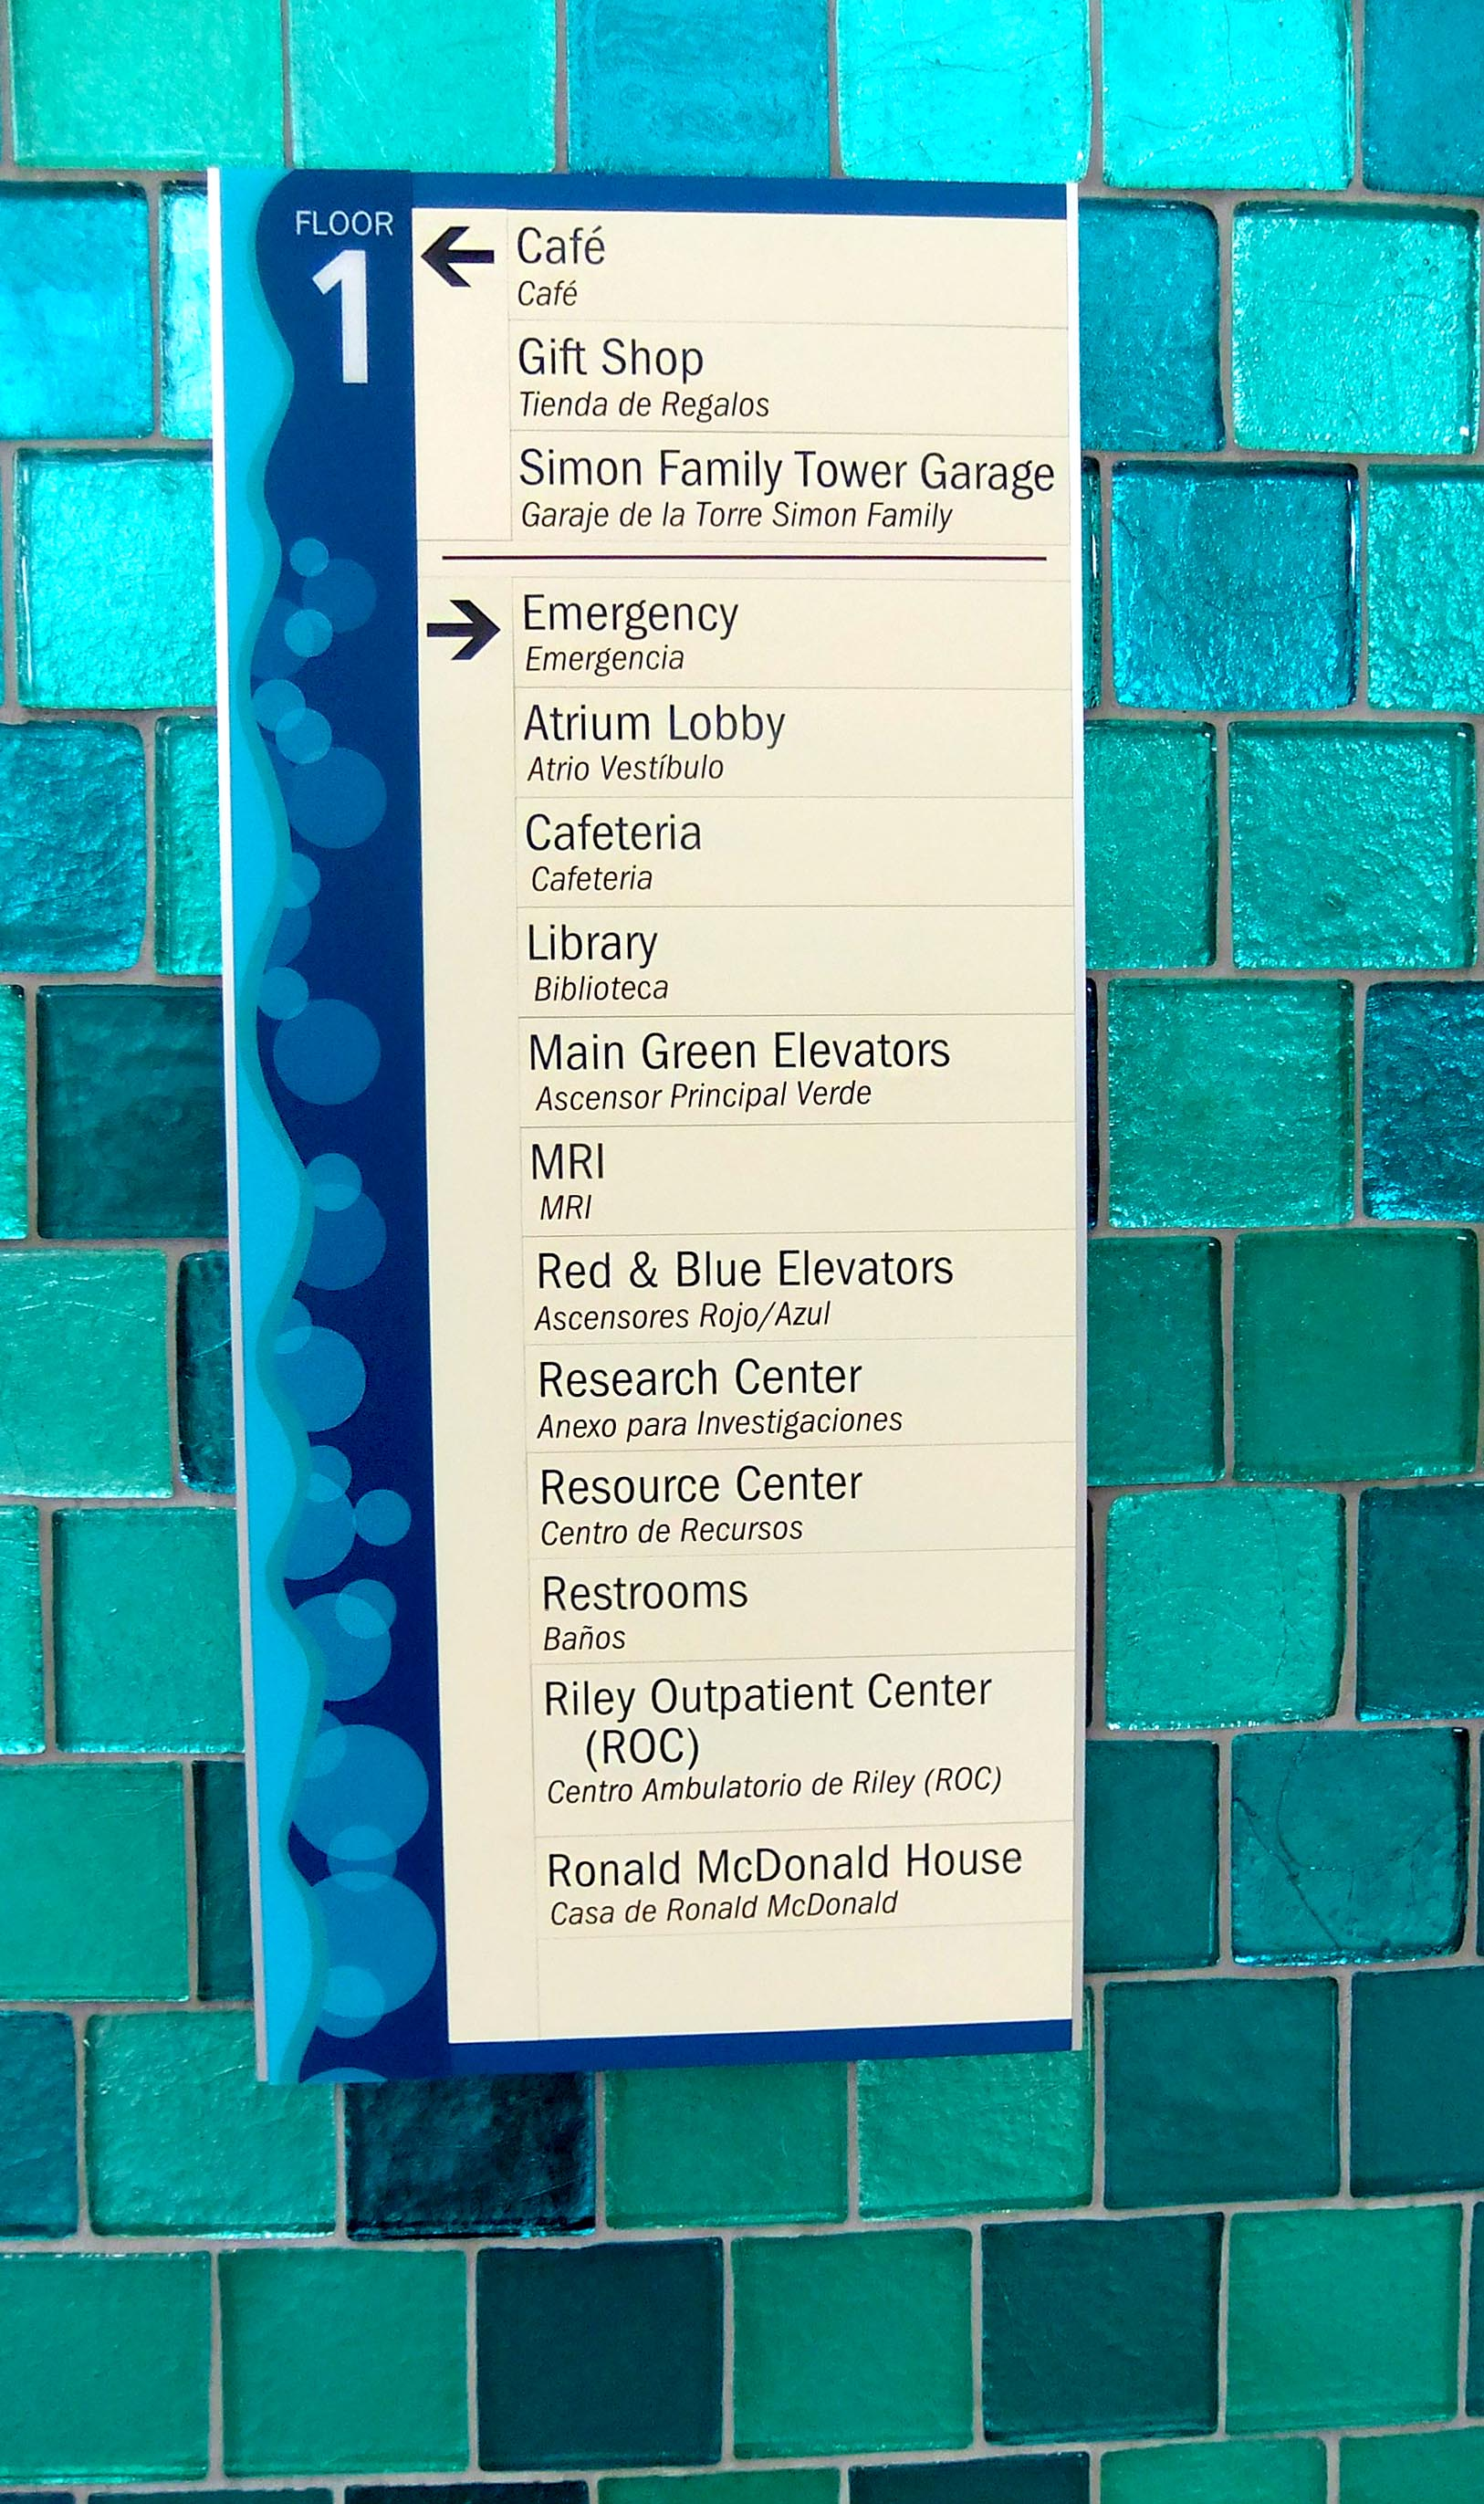 wayfinding-sign-hospital.jpg